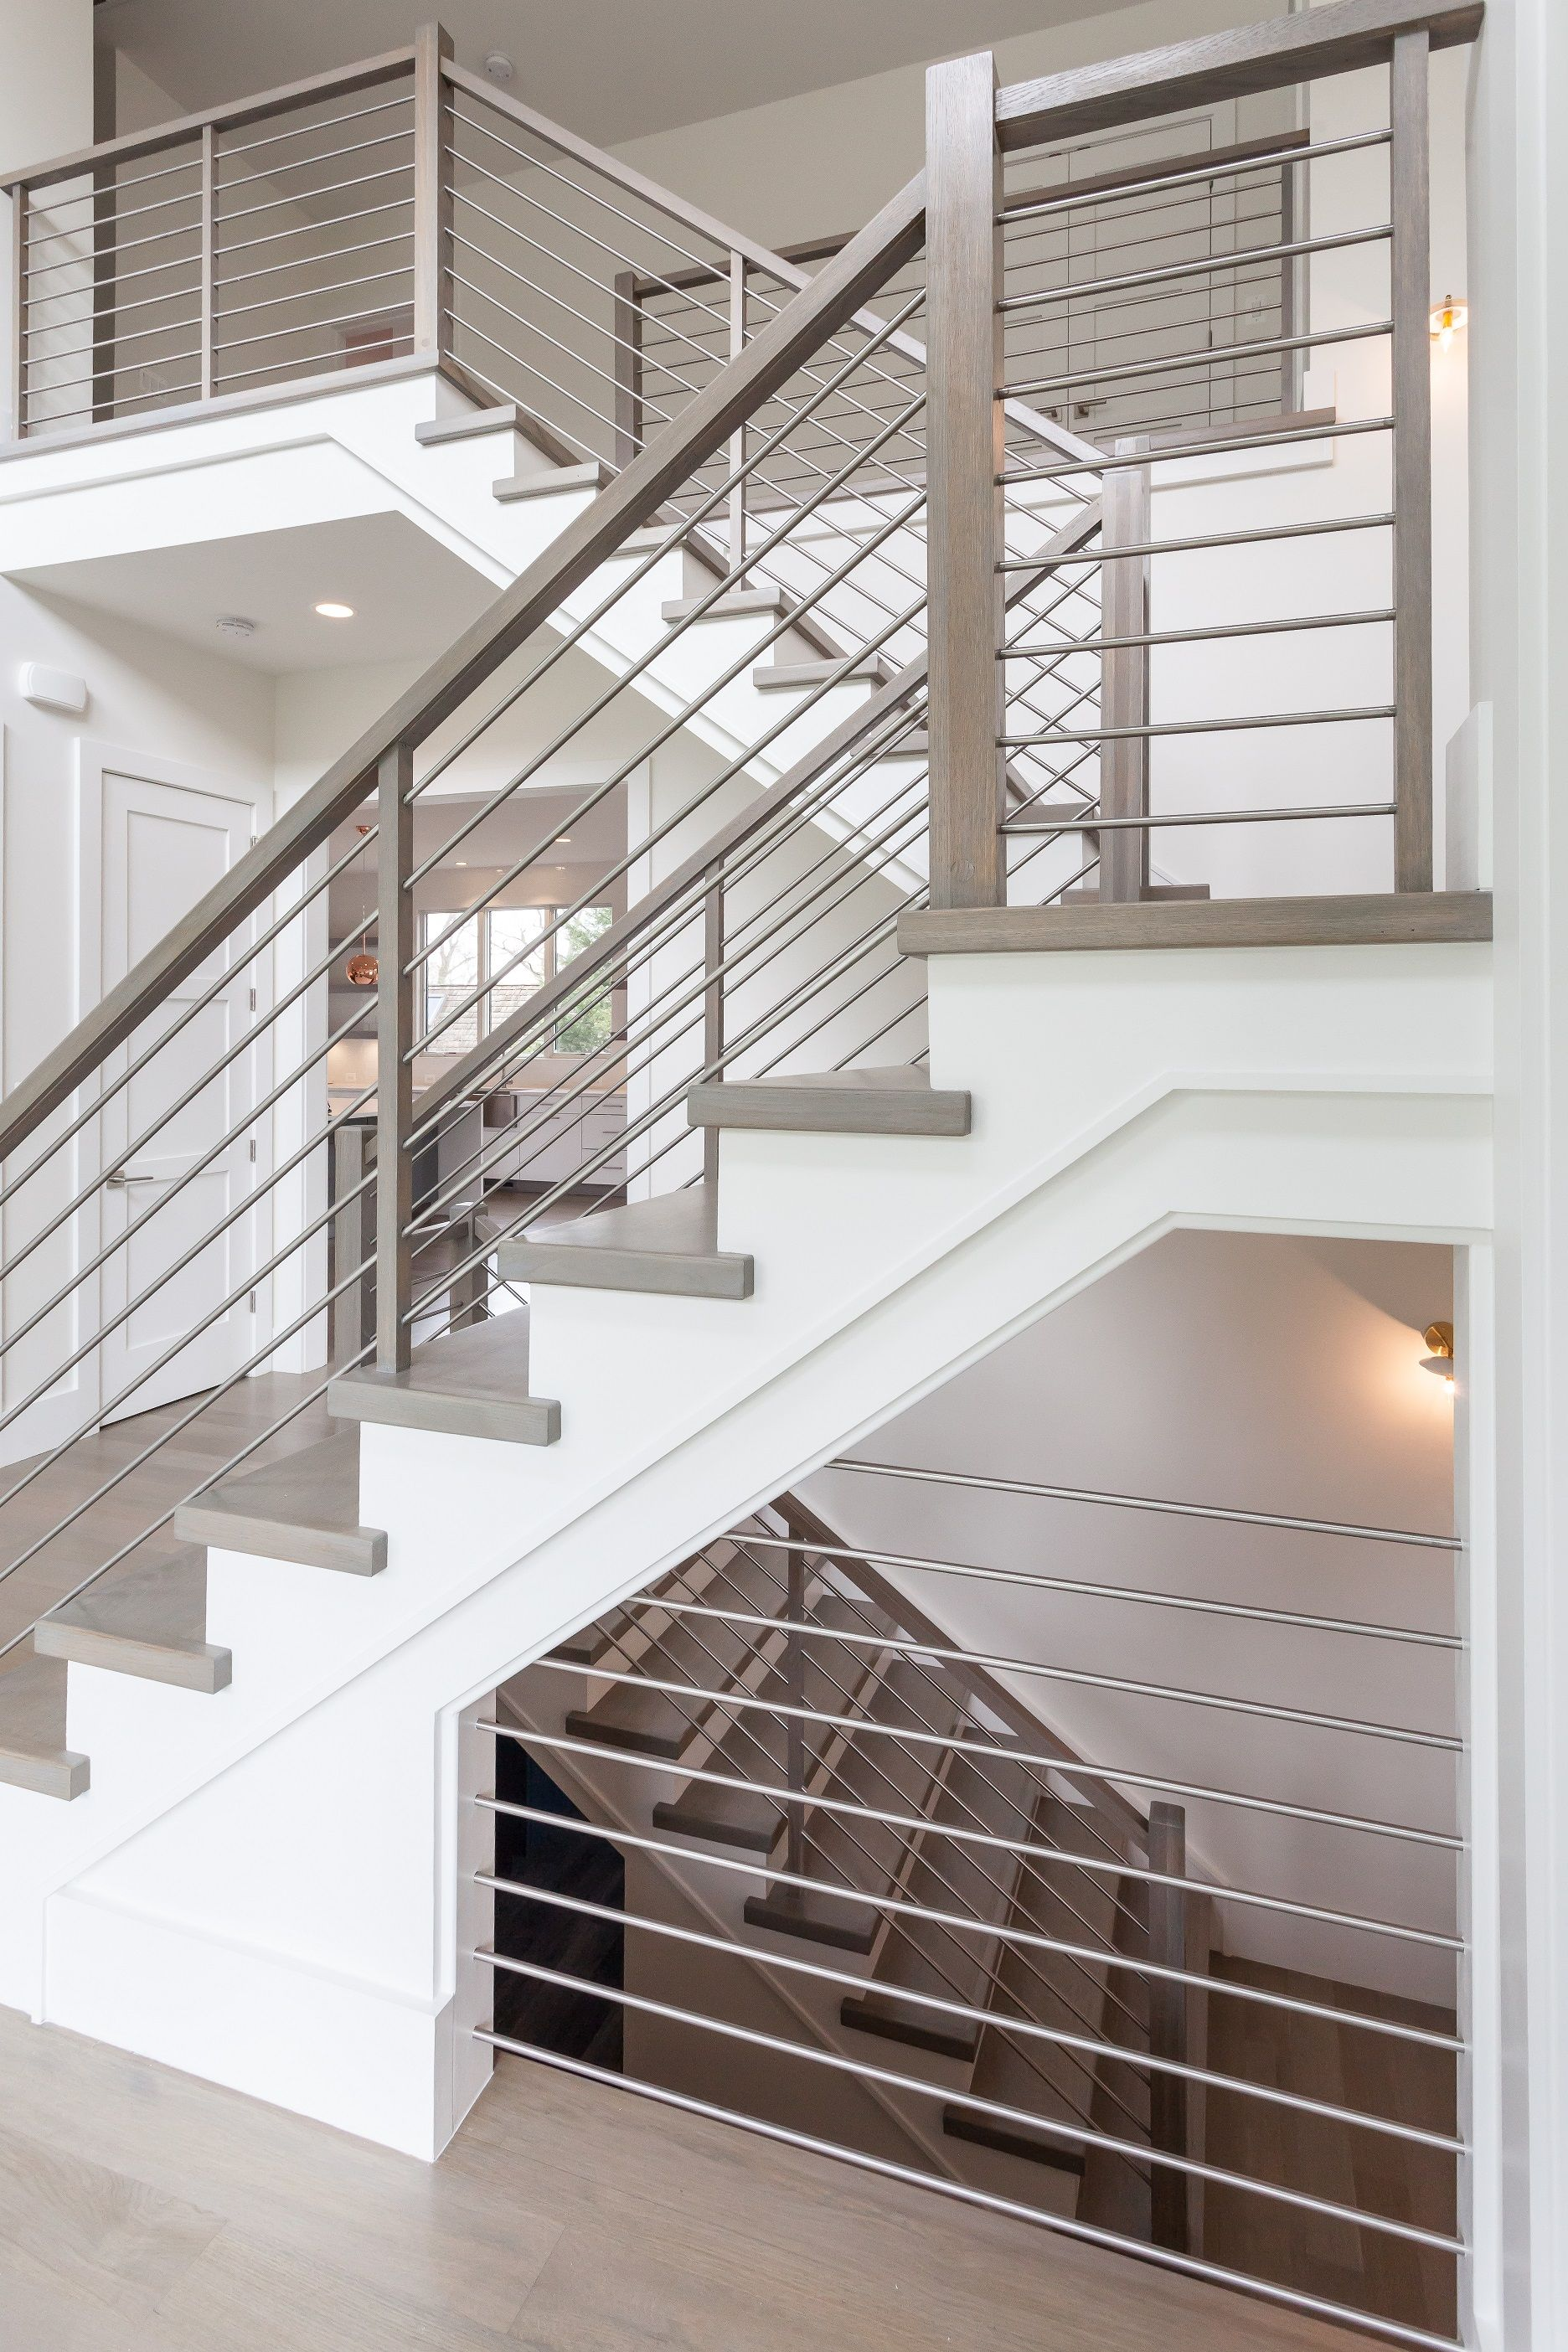 Contemporary Staircase In Entry With Modern Horizontal Stainless